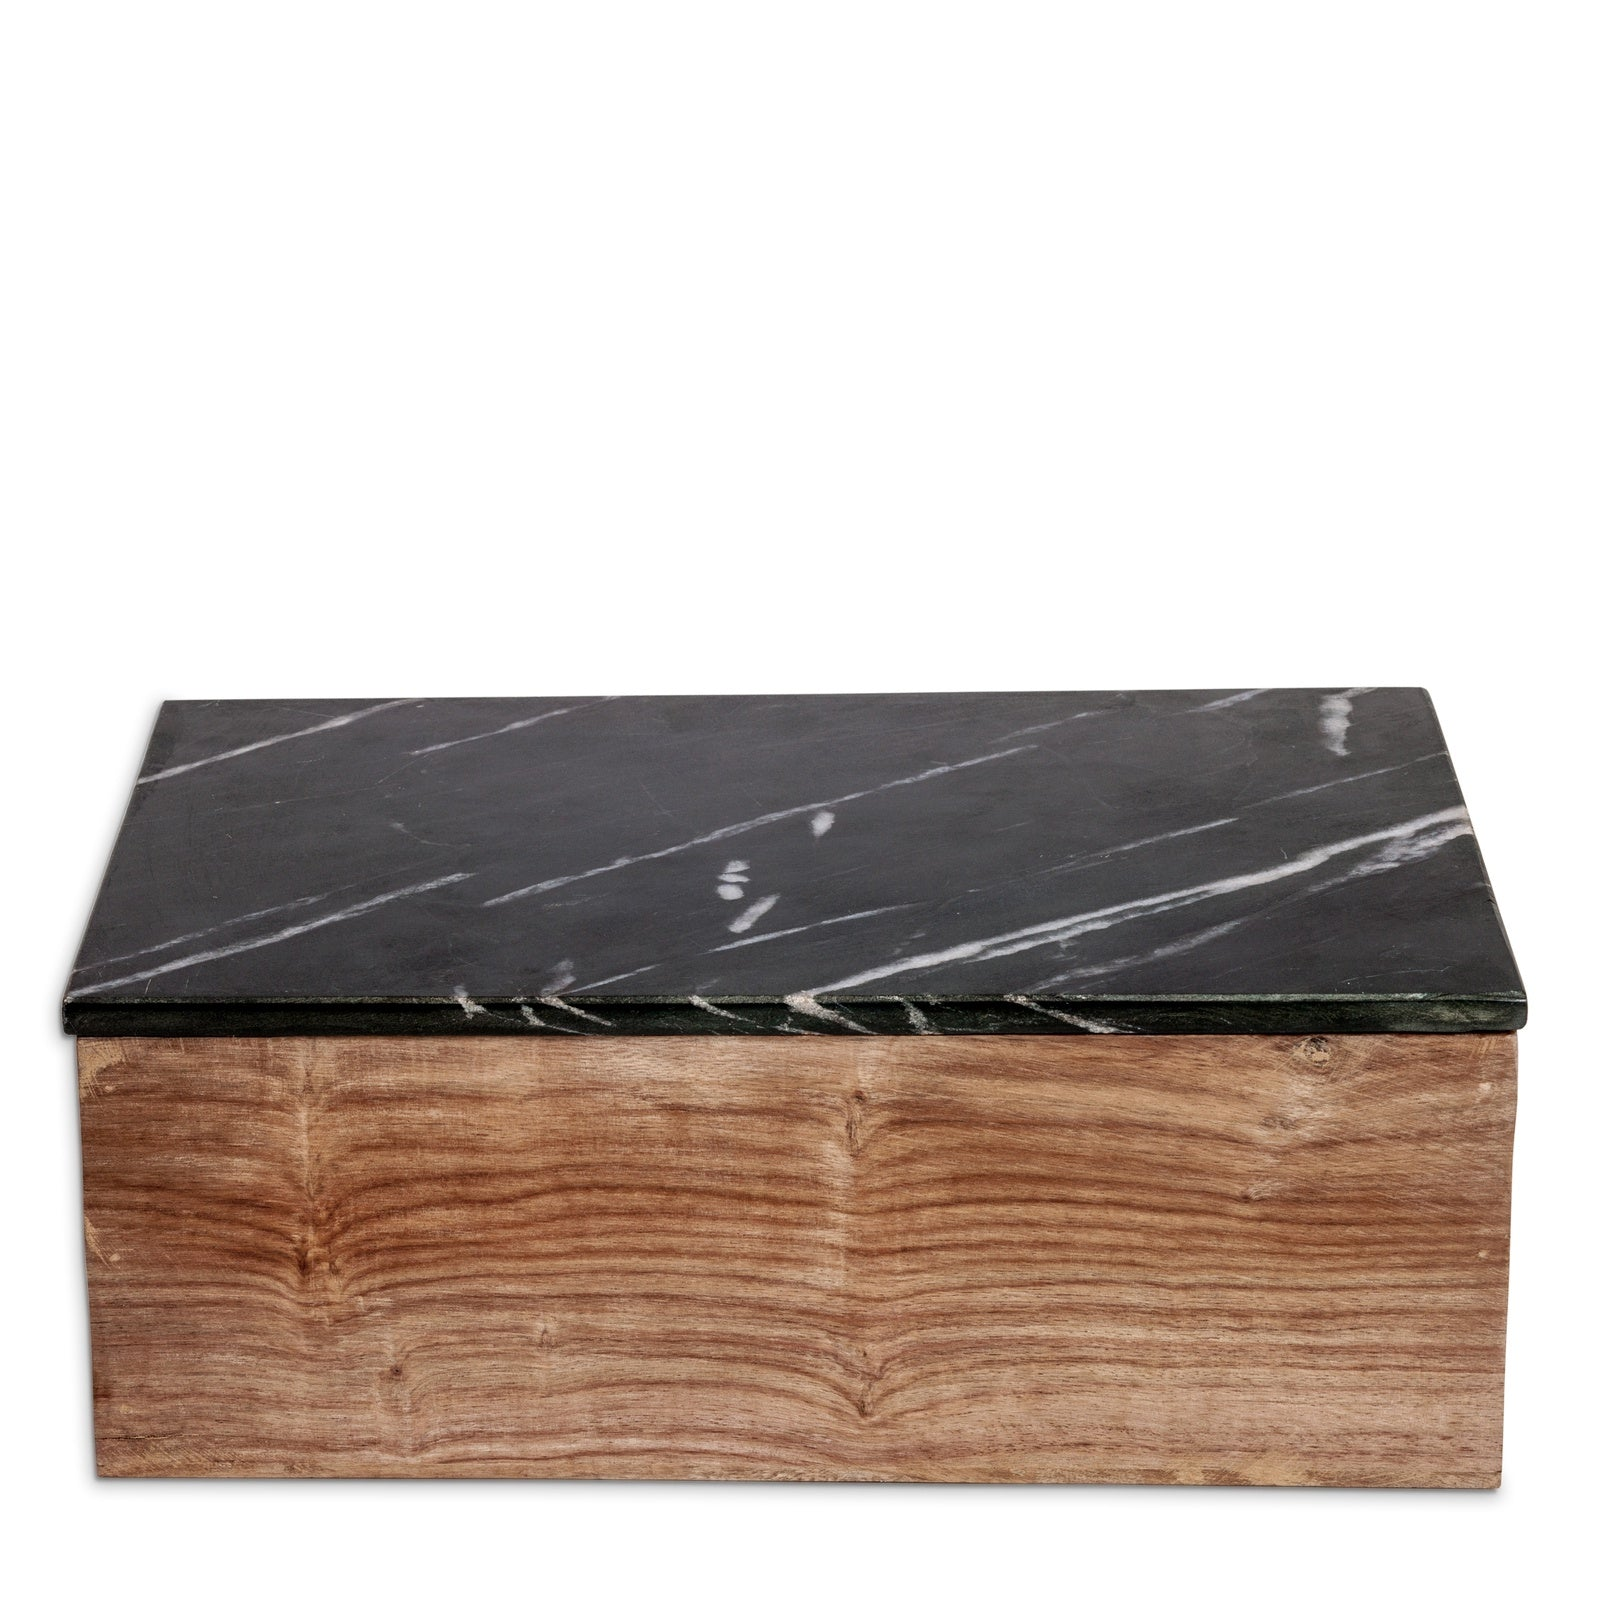 Wooden Box with Black Marble